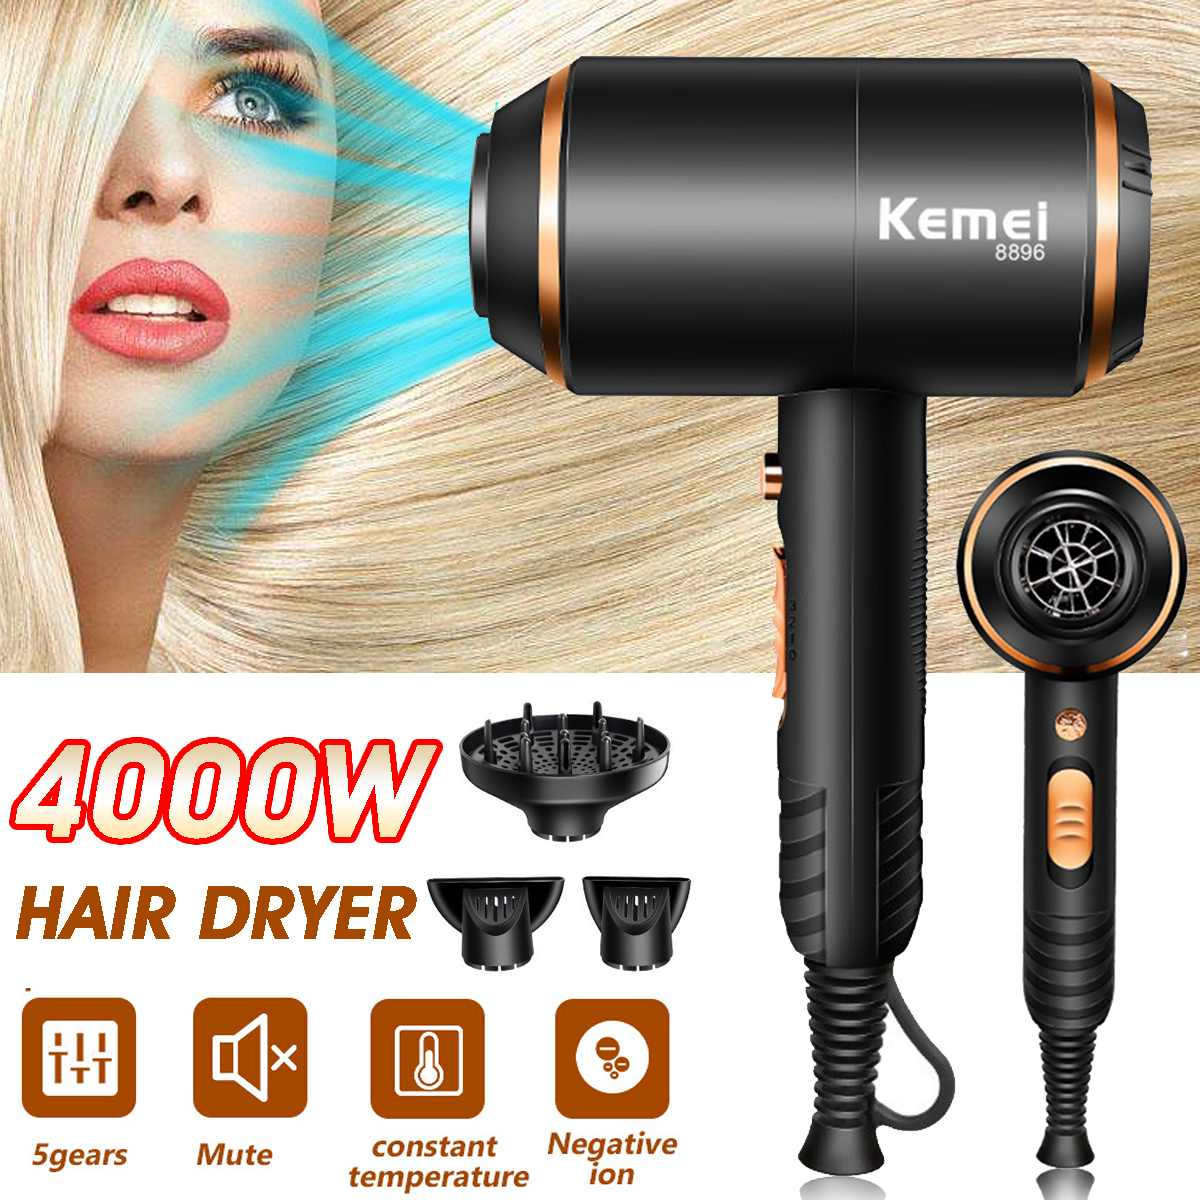 Becornce 110-220v 4000W Professional Hair Dryer Hot Cold Ionic Blow Dryer Fast Heating Household Hairdryer Hairdressing Salon